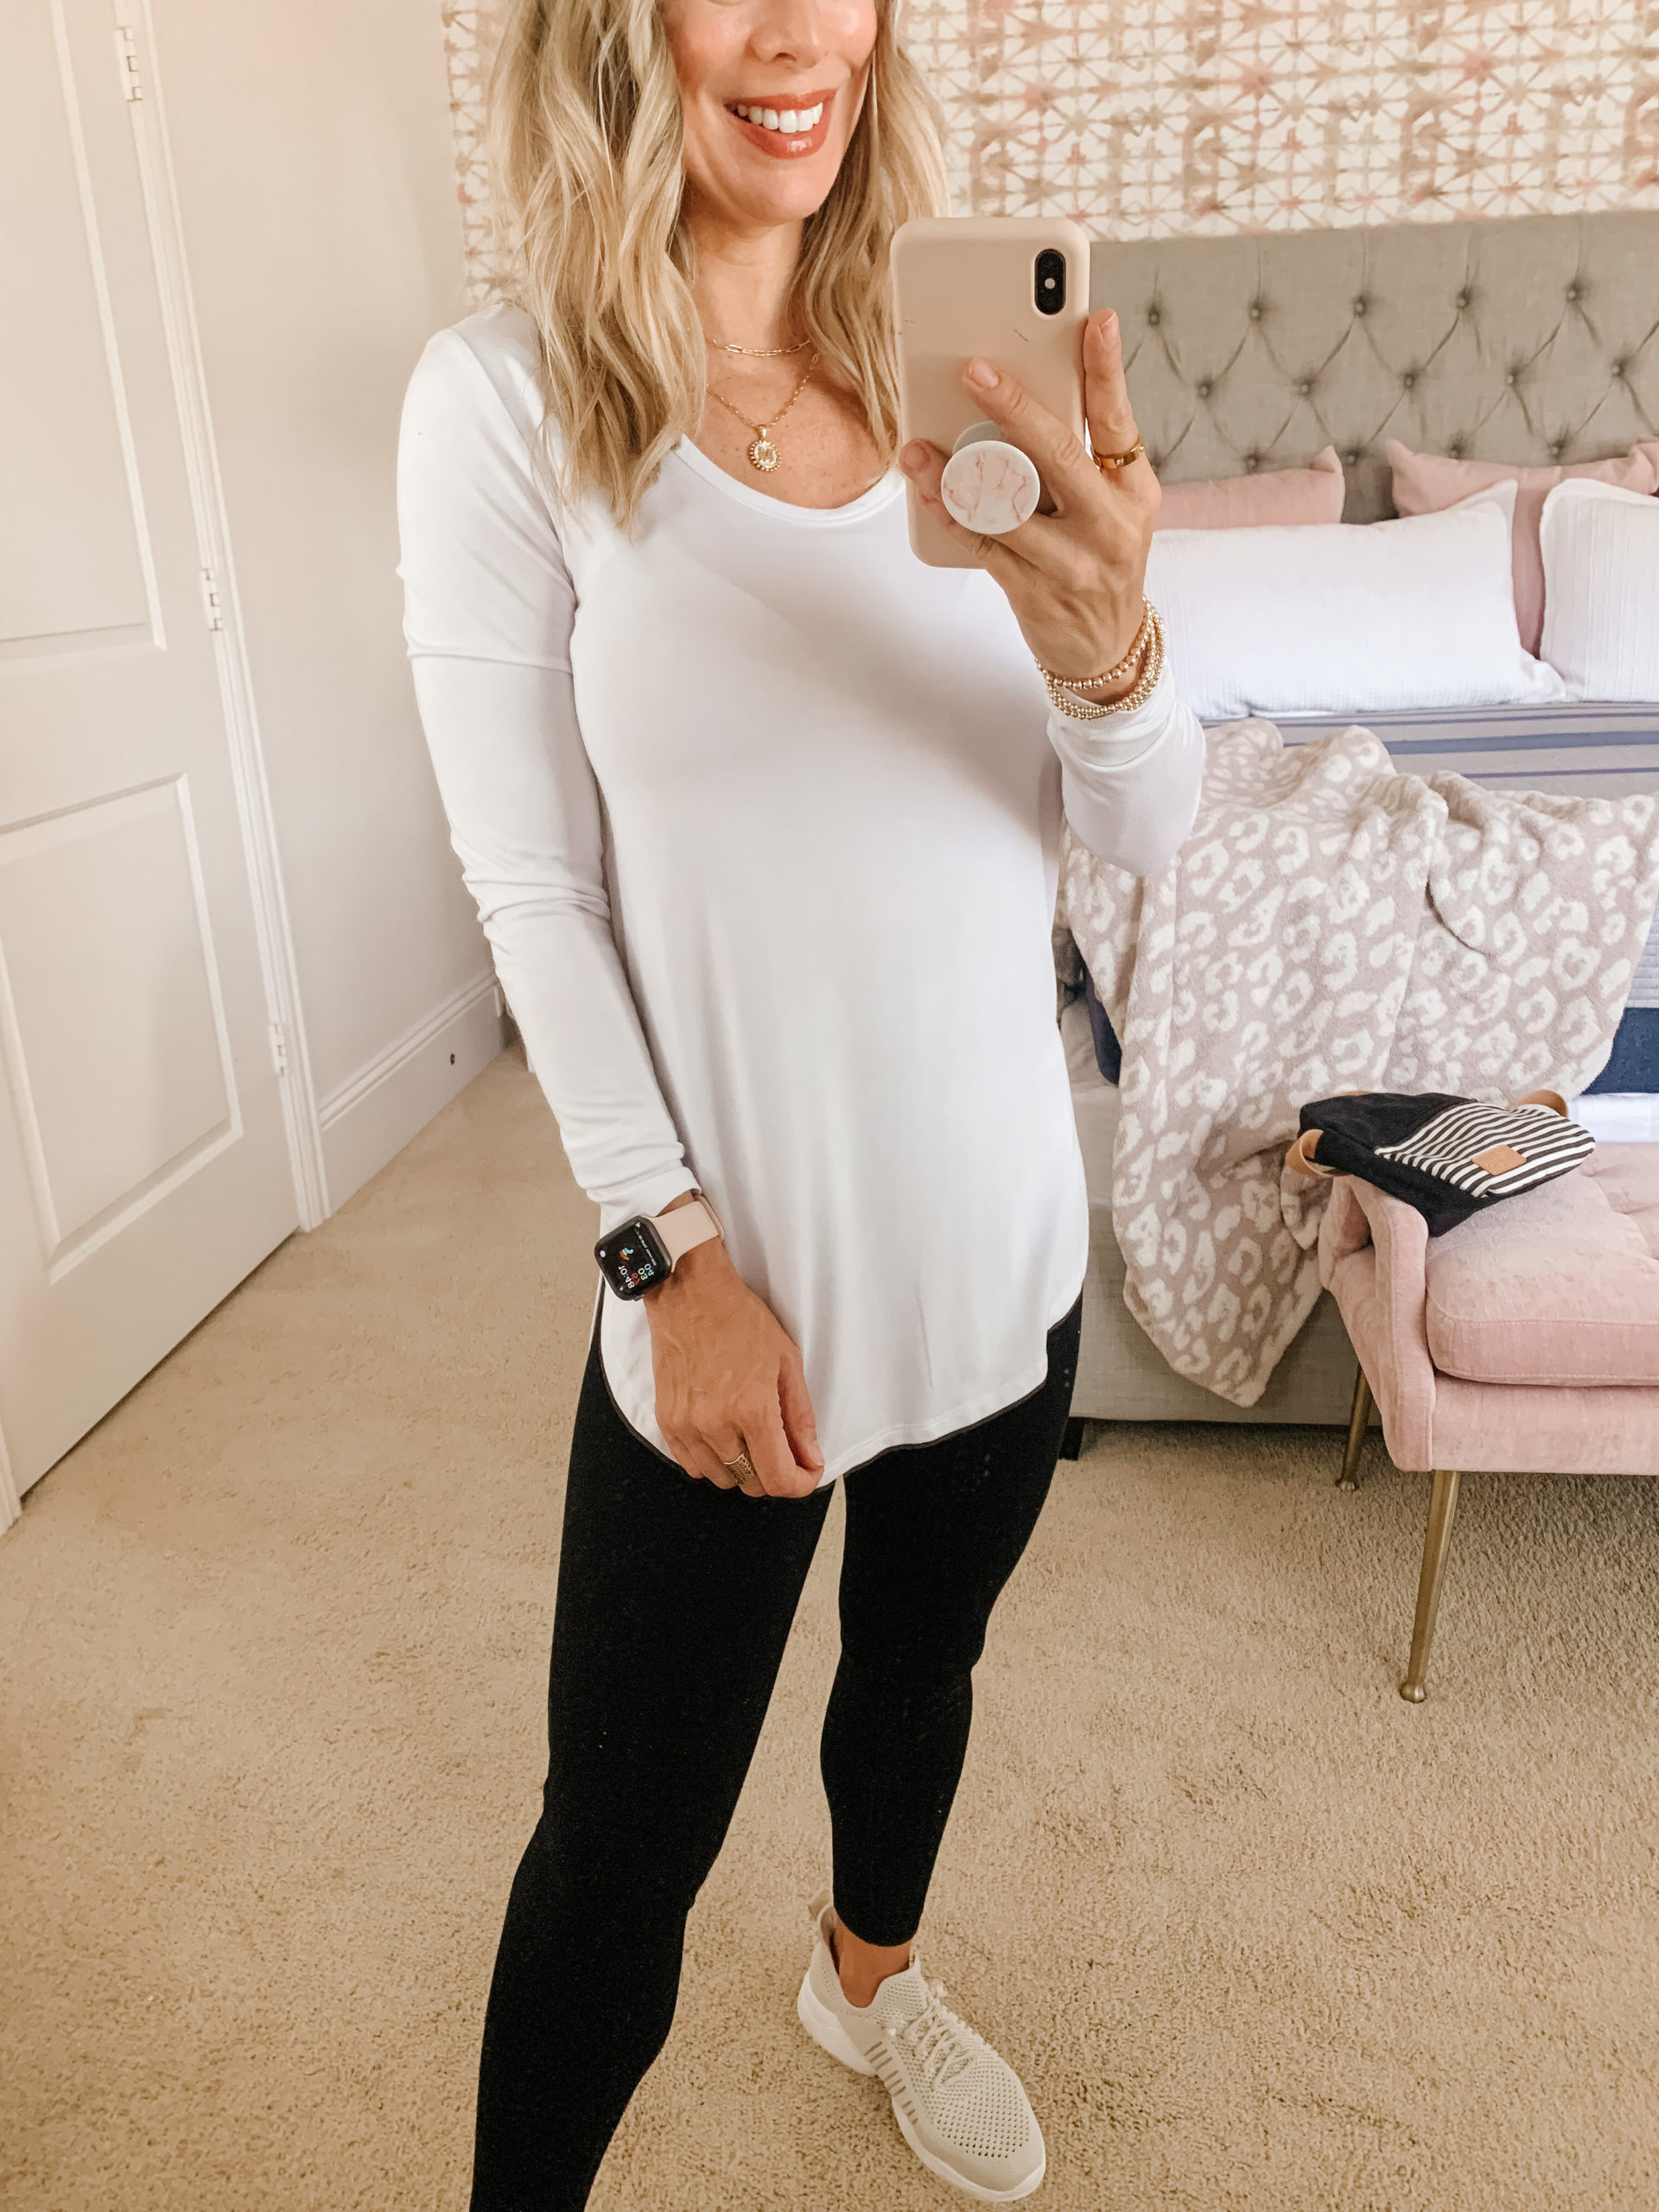 Amazon Fashion, Tunic Tee and Leggings with Slip on Sneakers